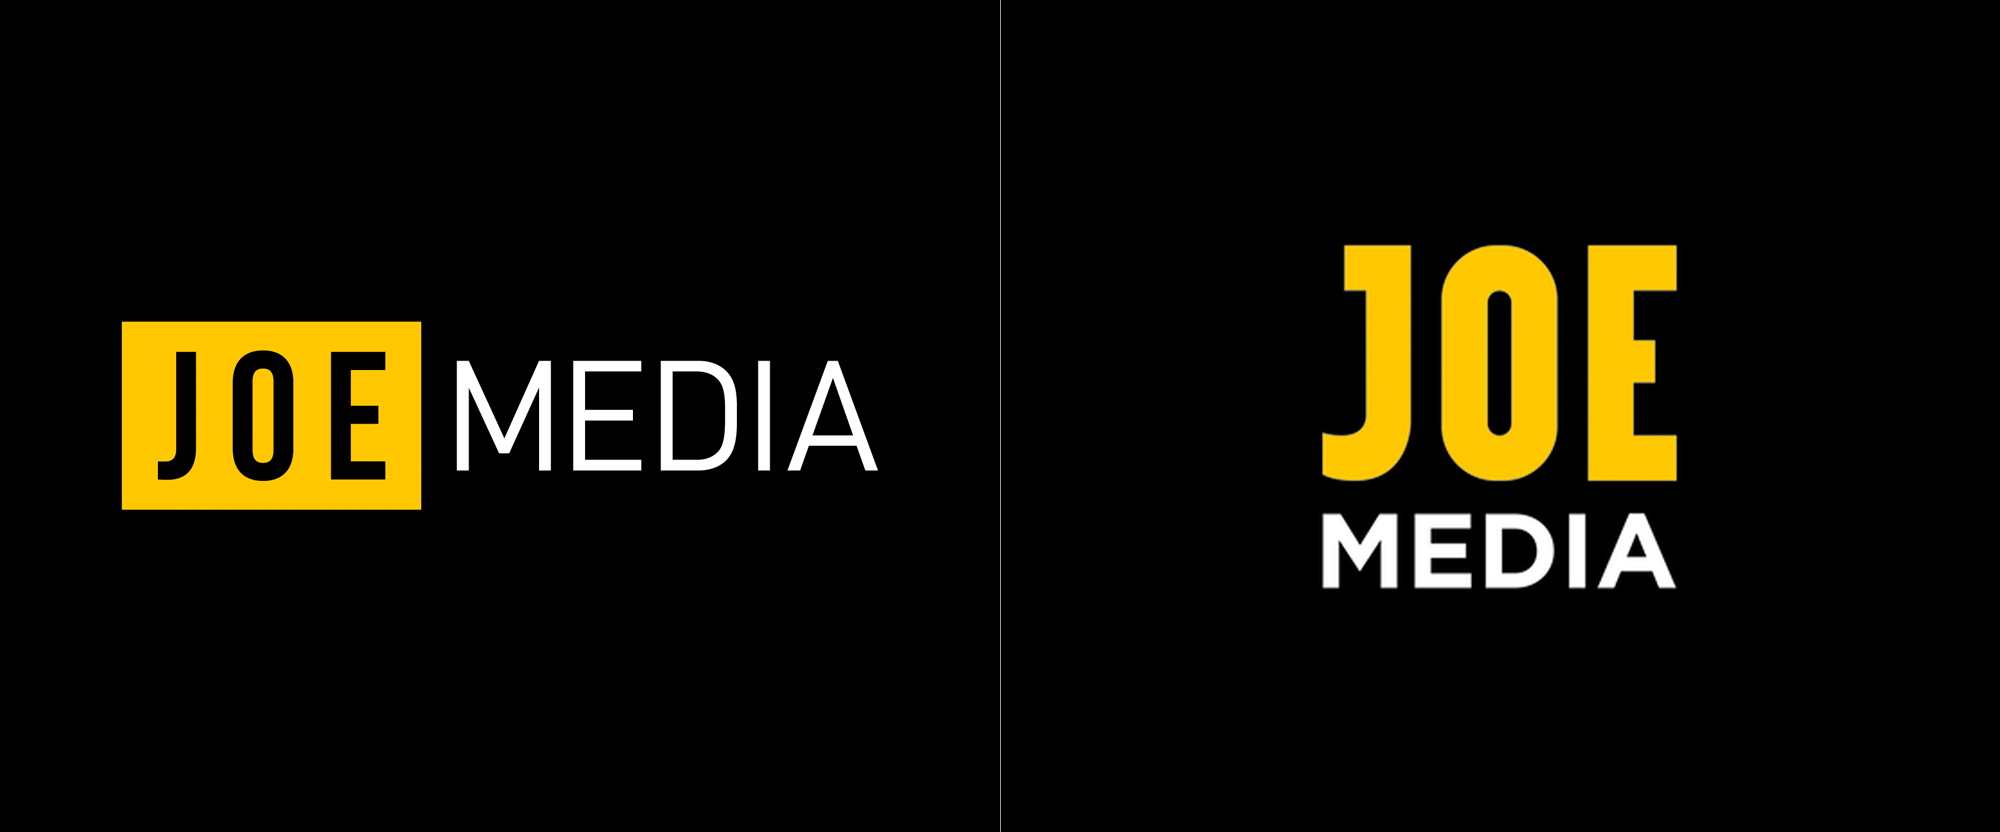 New Logo for Joe Media done In-house